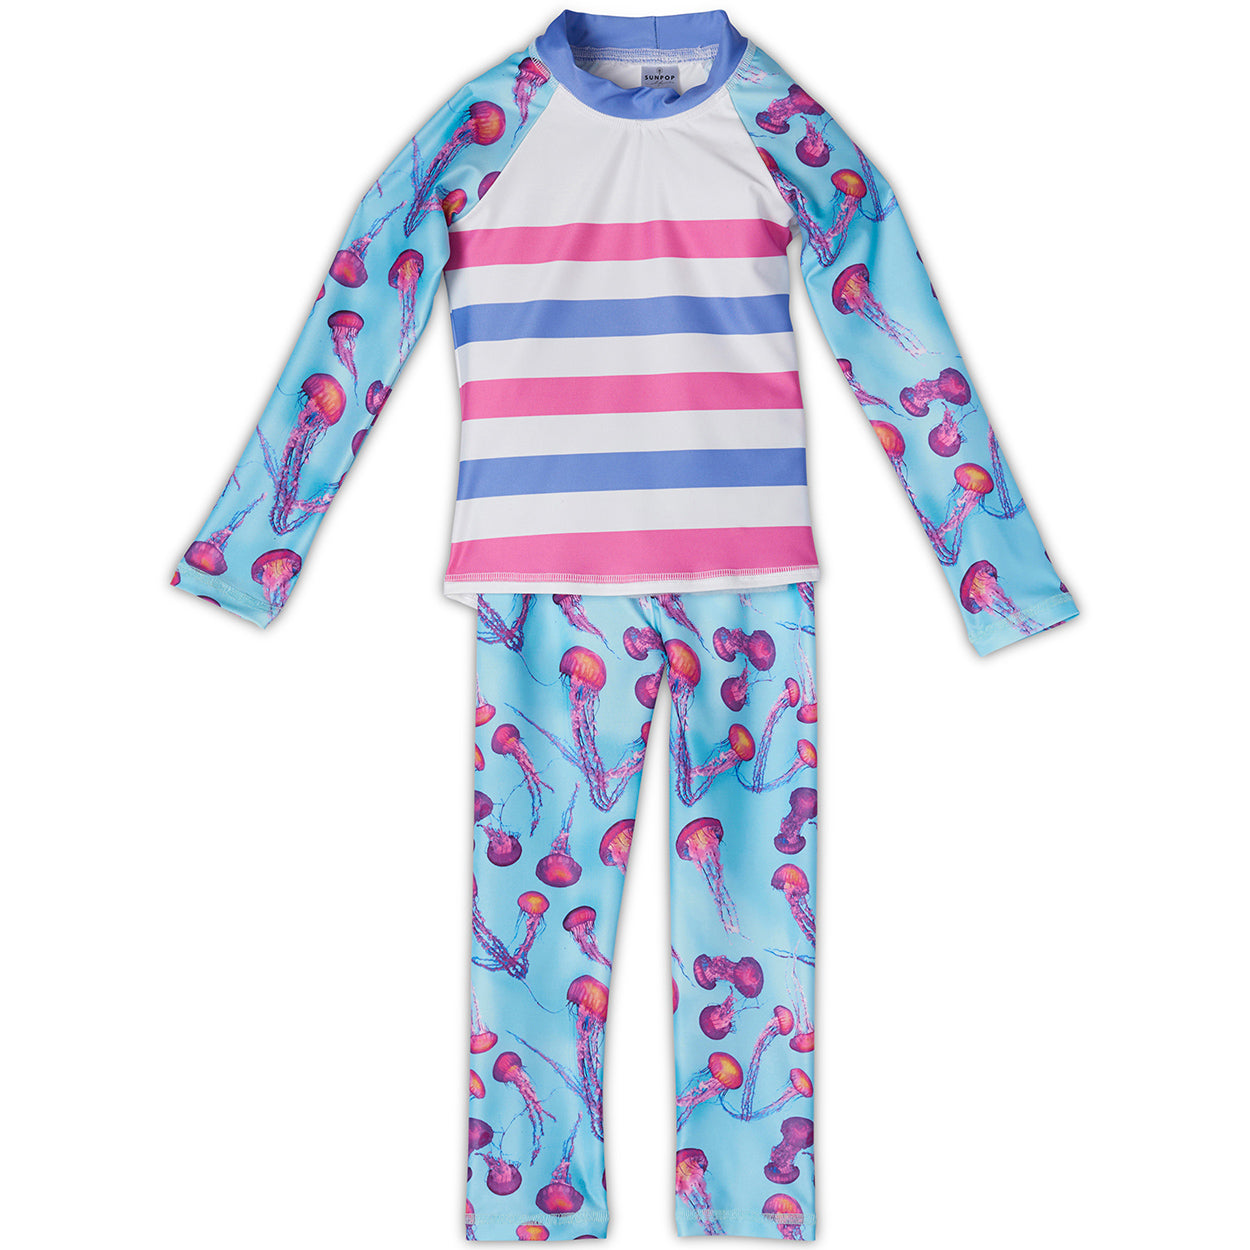 Pink Jellyfish 2Pc Rash Guard Set Girls Sunpoplife